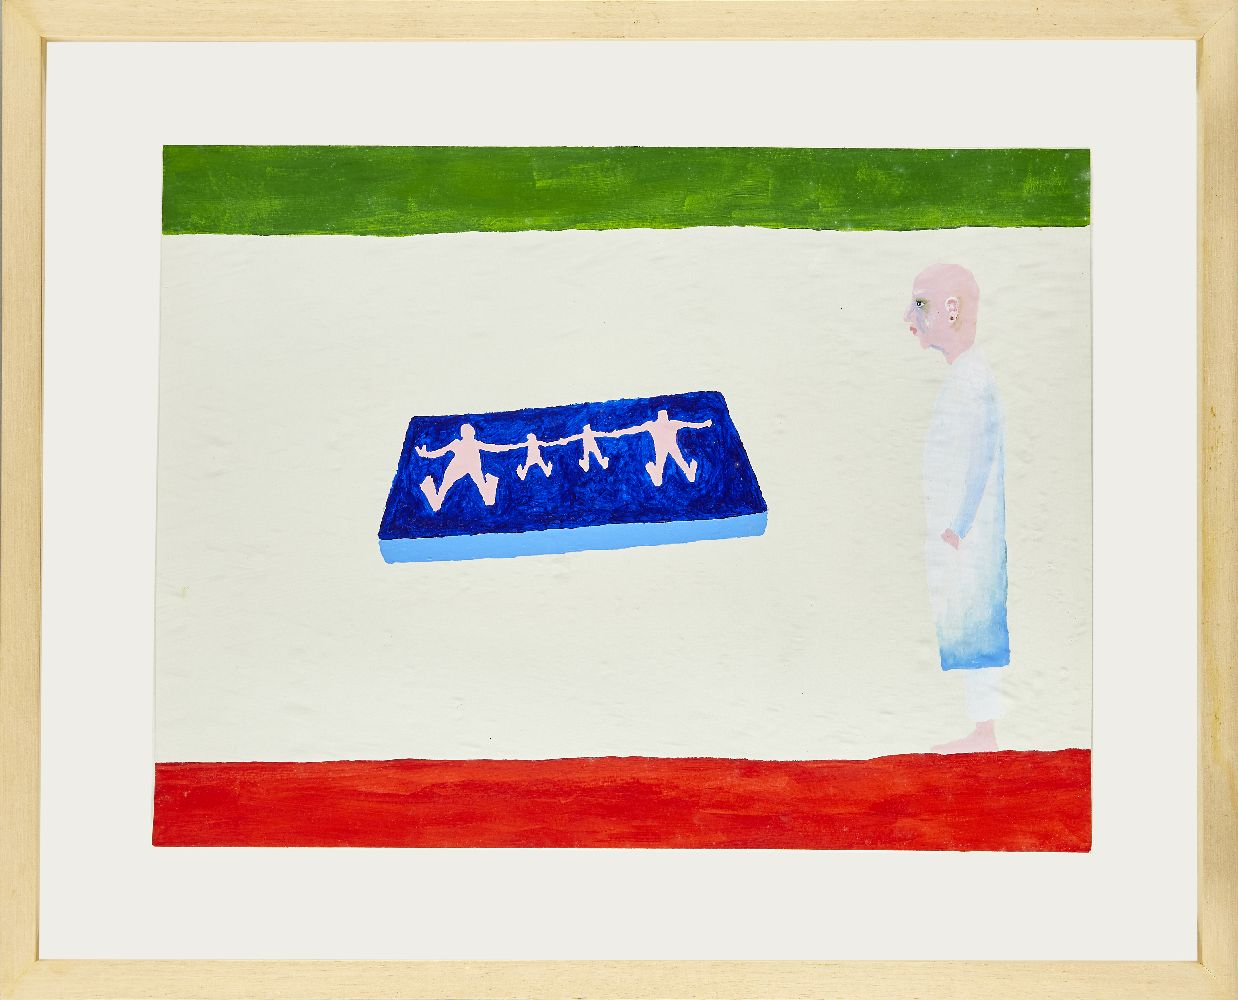 Bertold Stallmach, Swiss b.1984- Sick Family at the Doctor's Place, 2009; mixed media on paper, - Image 2 of 2